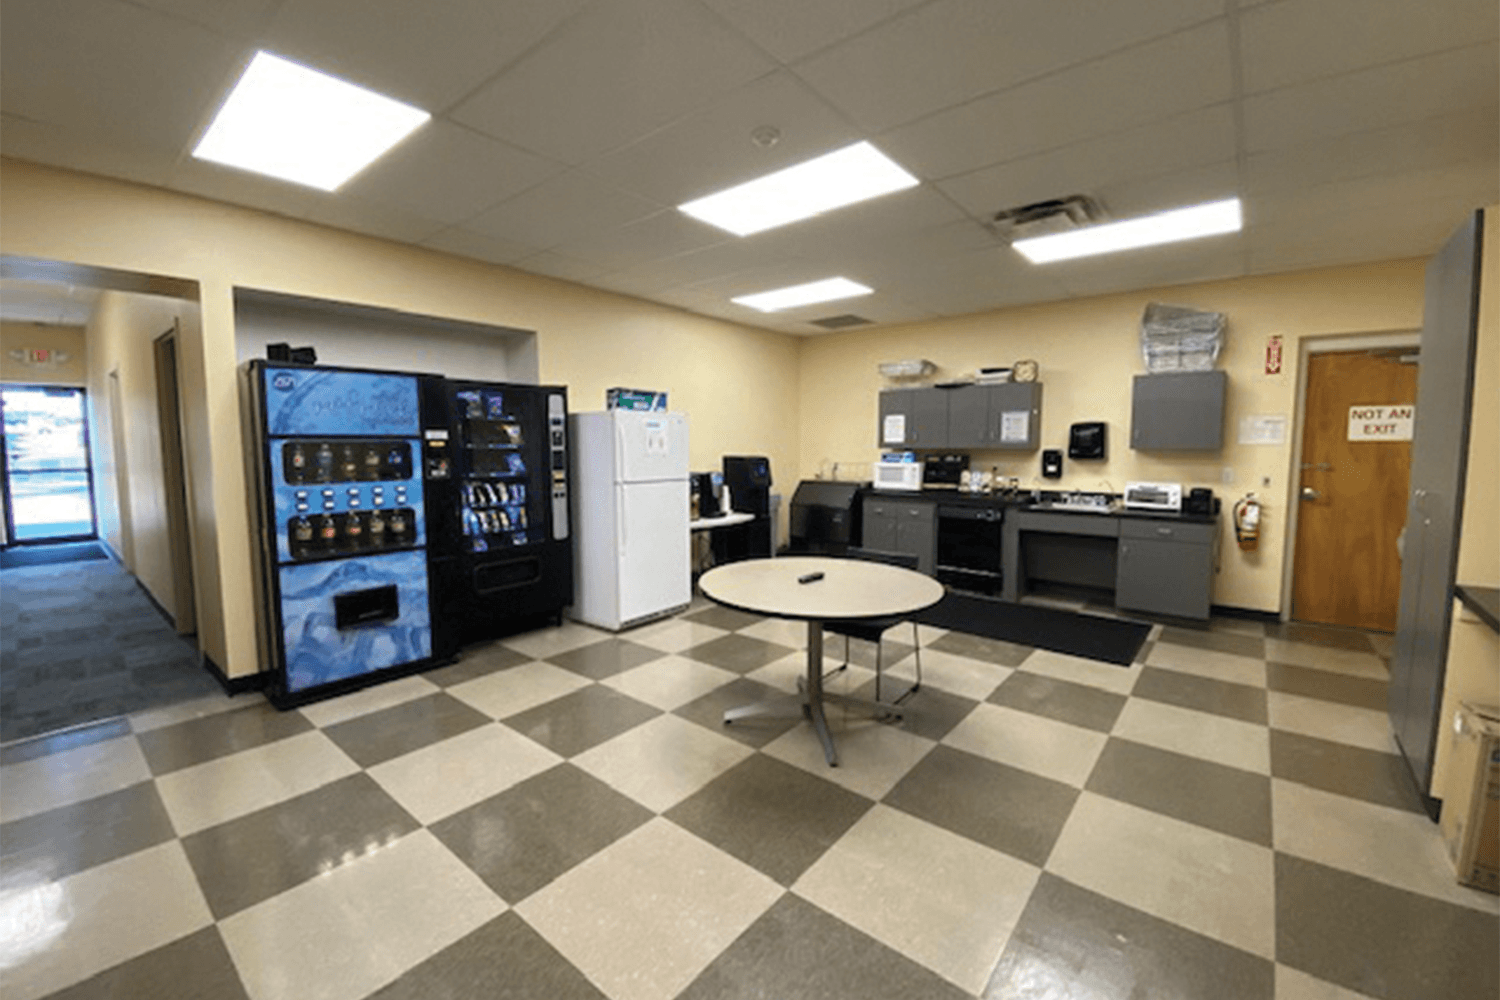 break area with a checkerboard floor, vending machines, a sink, refrigerator, and dishwasher